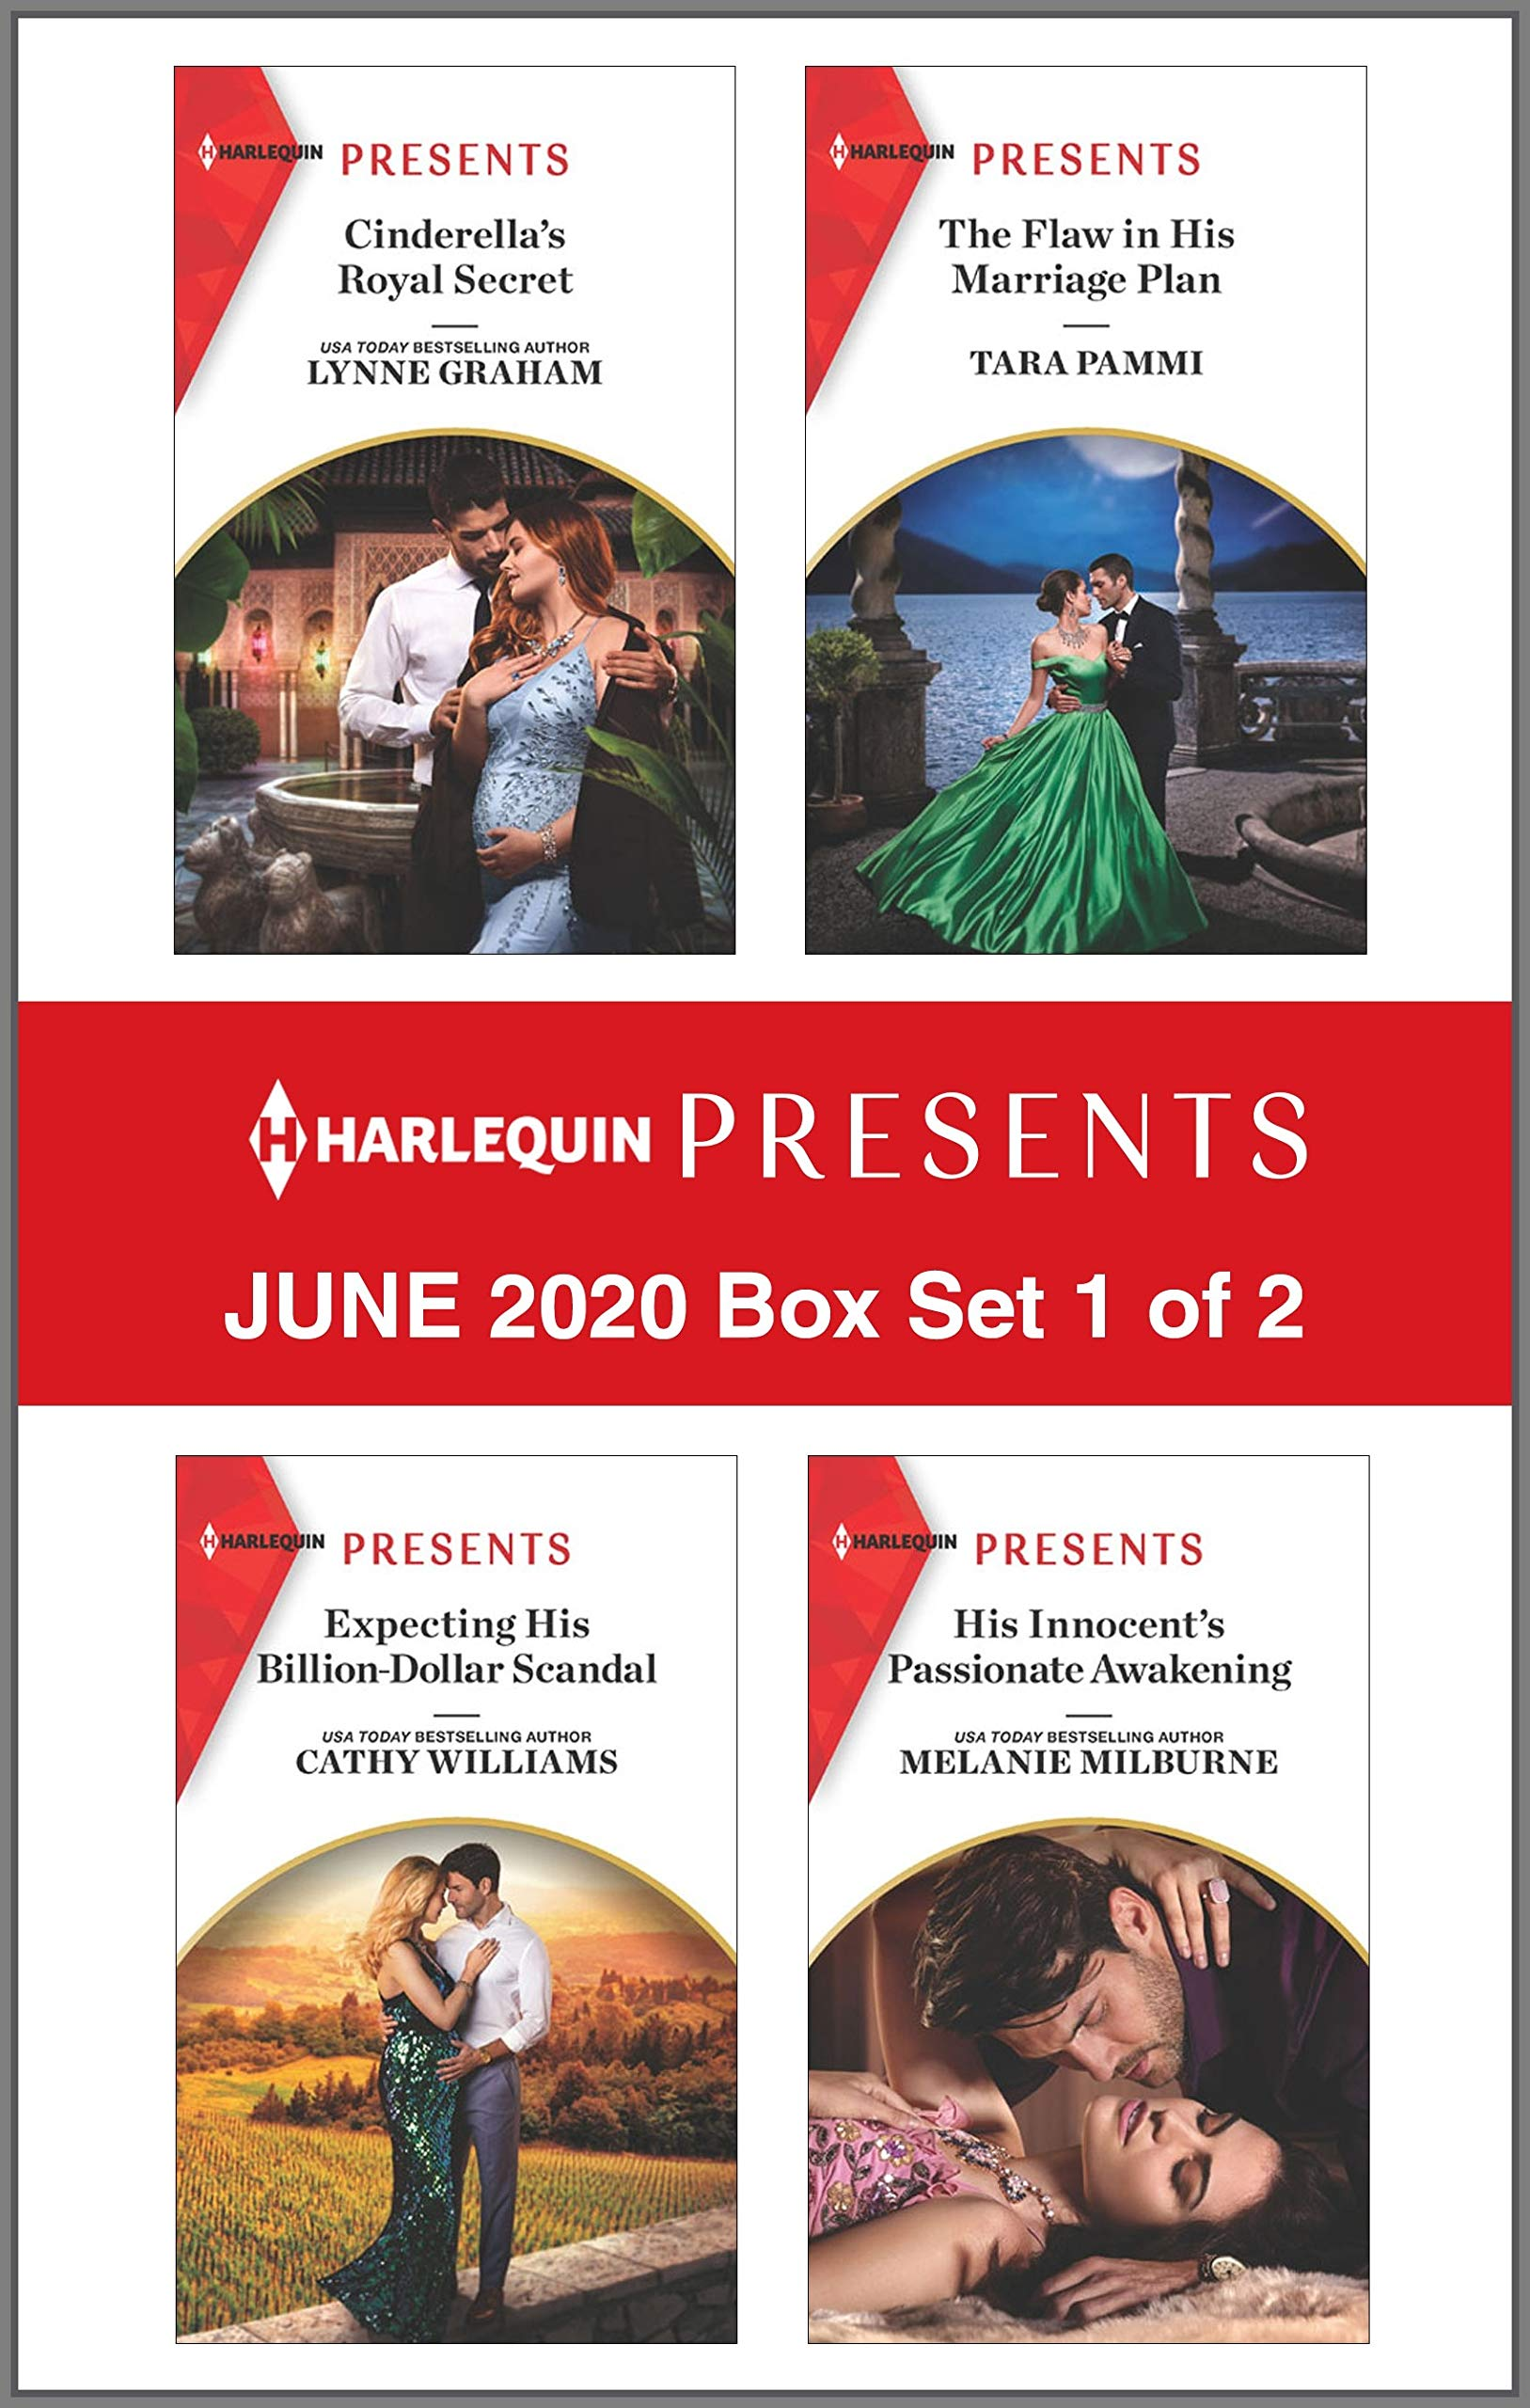 Harlequin Presents - June 2020 - Box Set 1 of 2: Cinderella's Royal Secret\Expecting His Billion-Dollar Scandal\The Flaw In His Marriage Plan\His Innocent's Passionate Awakening